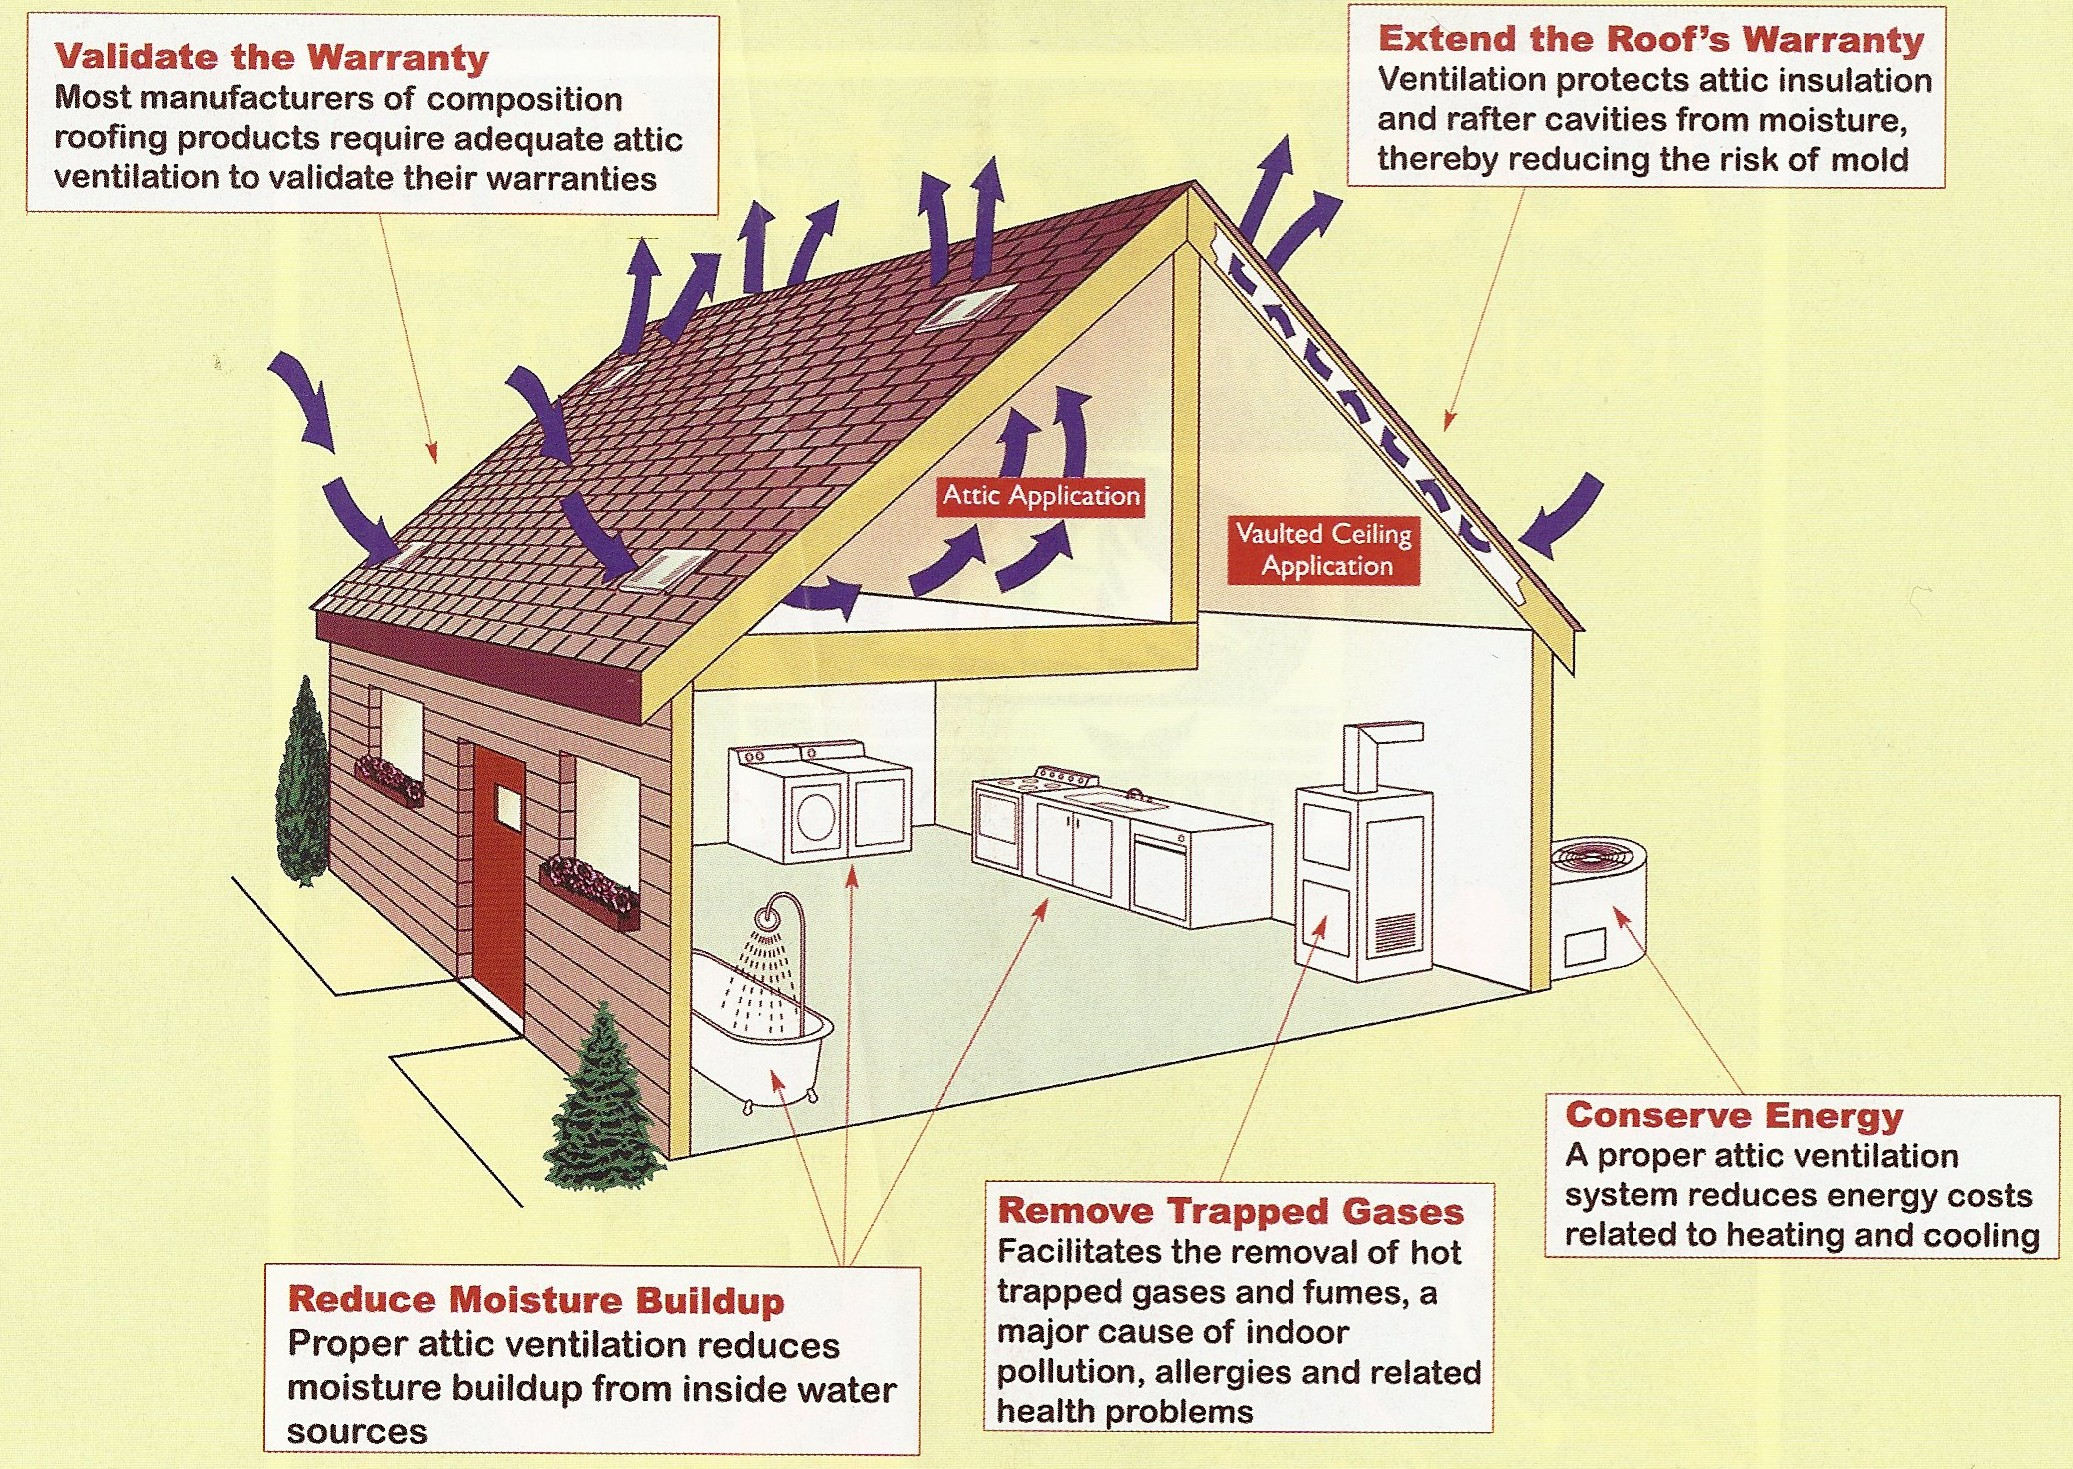 House Roof Ventilation : How to improve attic ventilation hirerush